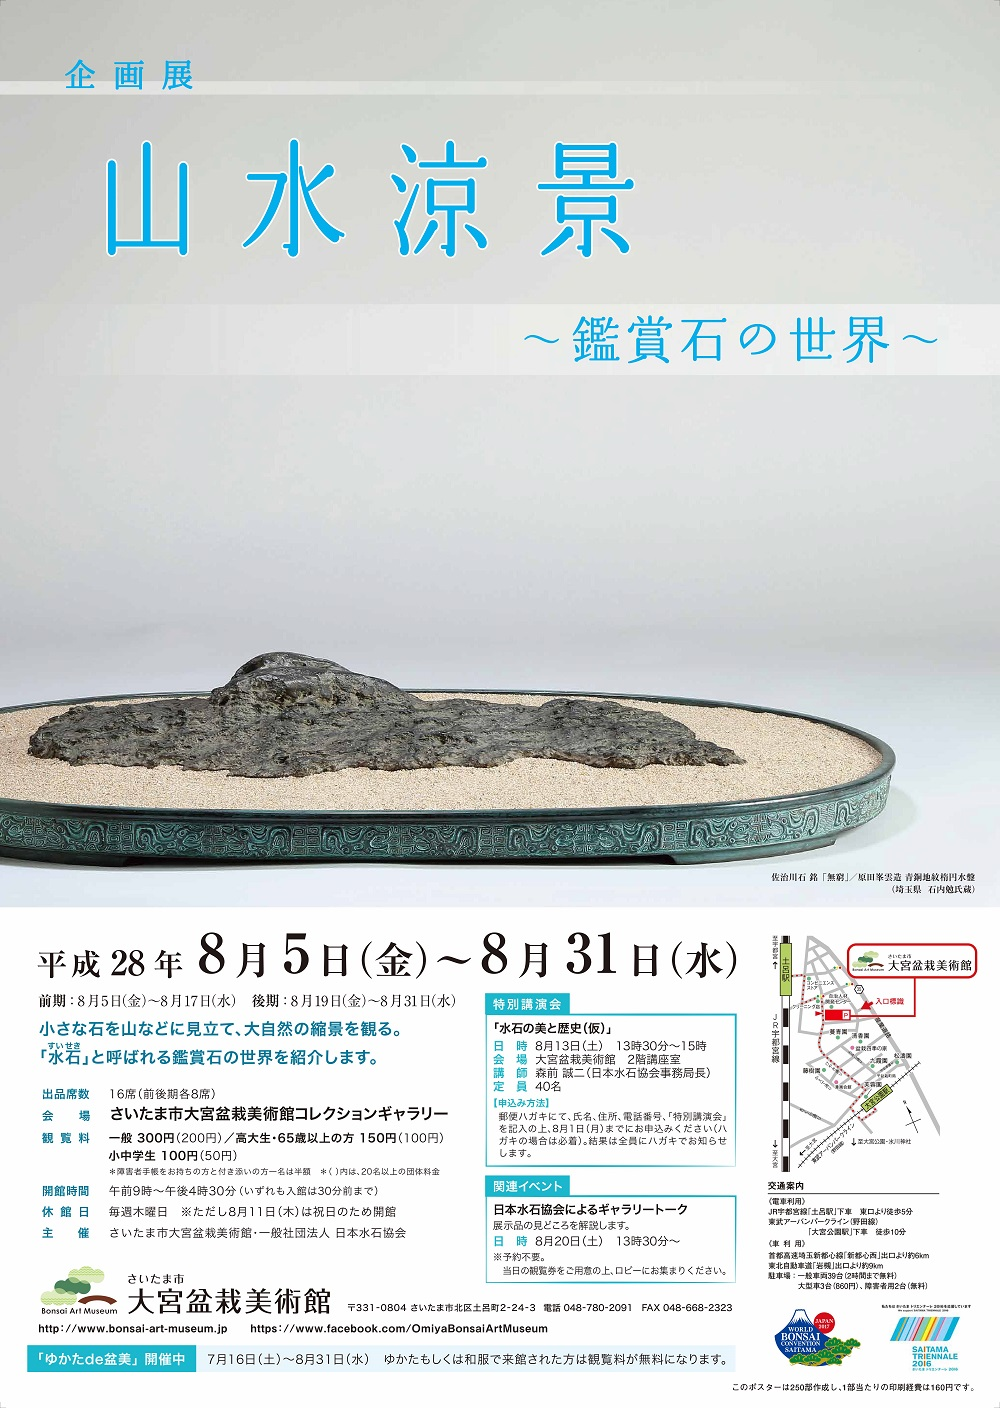 Japanese Summer Cool―The Beauty of Suiseki-stone